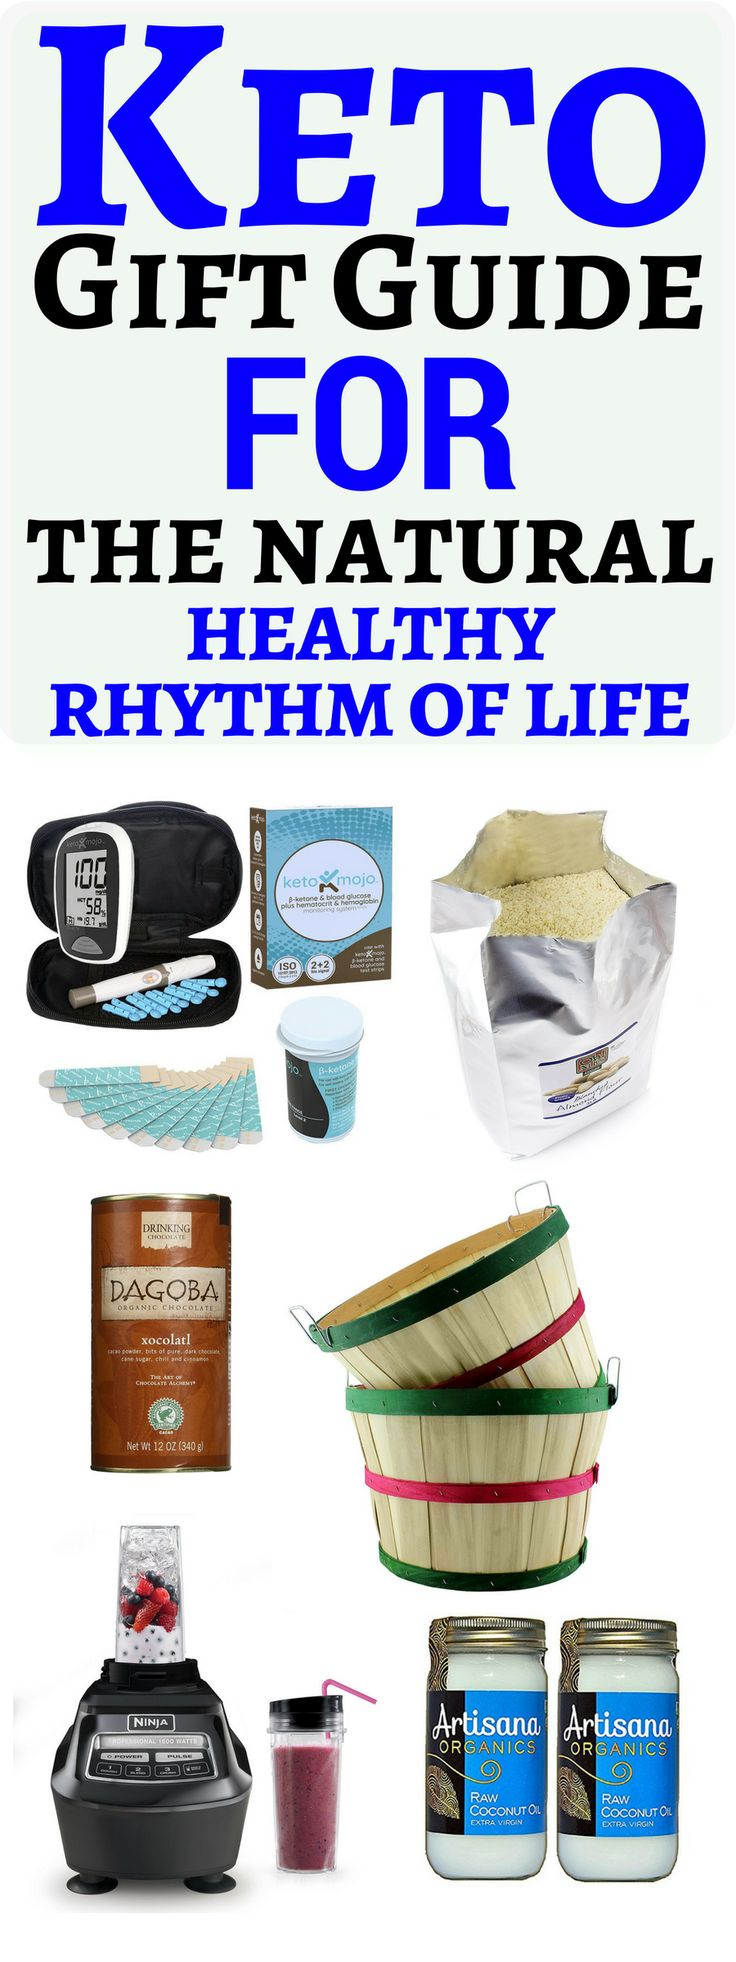 A  Keto Gift Guide for you or your friend, for  starting the ketogenic diet journey In this post you will fine the best keto gift guide with the best keto gift ideas and ketogenic gift basket ideas, for the low carb keto diet journey. This is a perfect and best keto gift guide with the best keto gift ideas for everyone. keto Gift Guide for the natural, healthy rhythm of life #keto #giftguide #ketogenicdiet #giftbasket #ketogiftideas